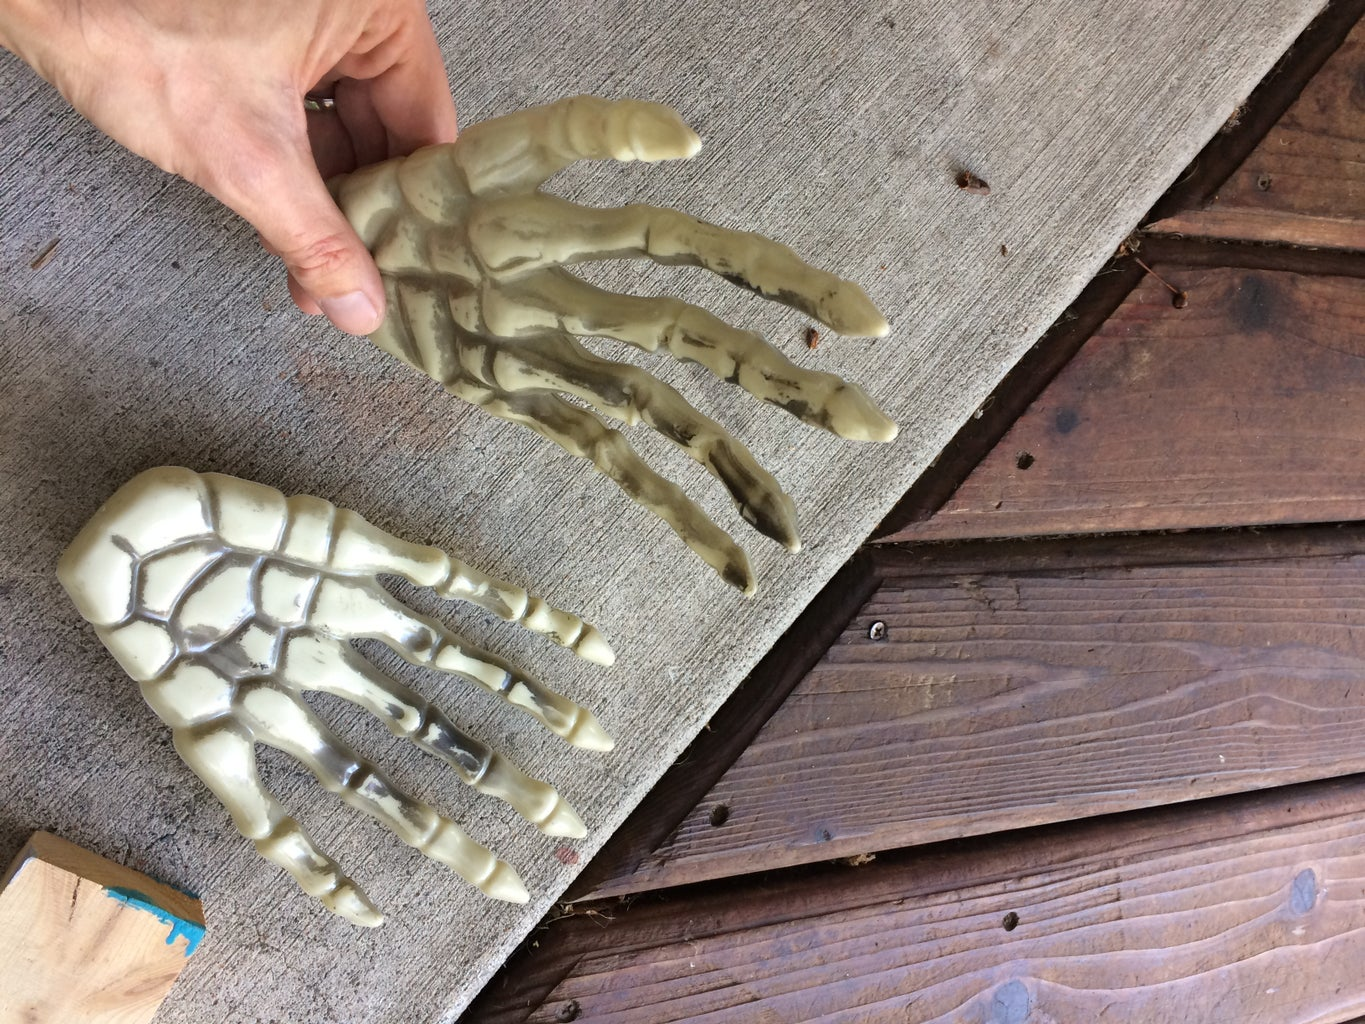 Bend All the Joints Backward to Turn a Right Hand Into a Left Hand